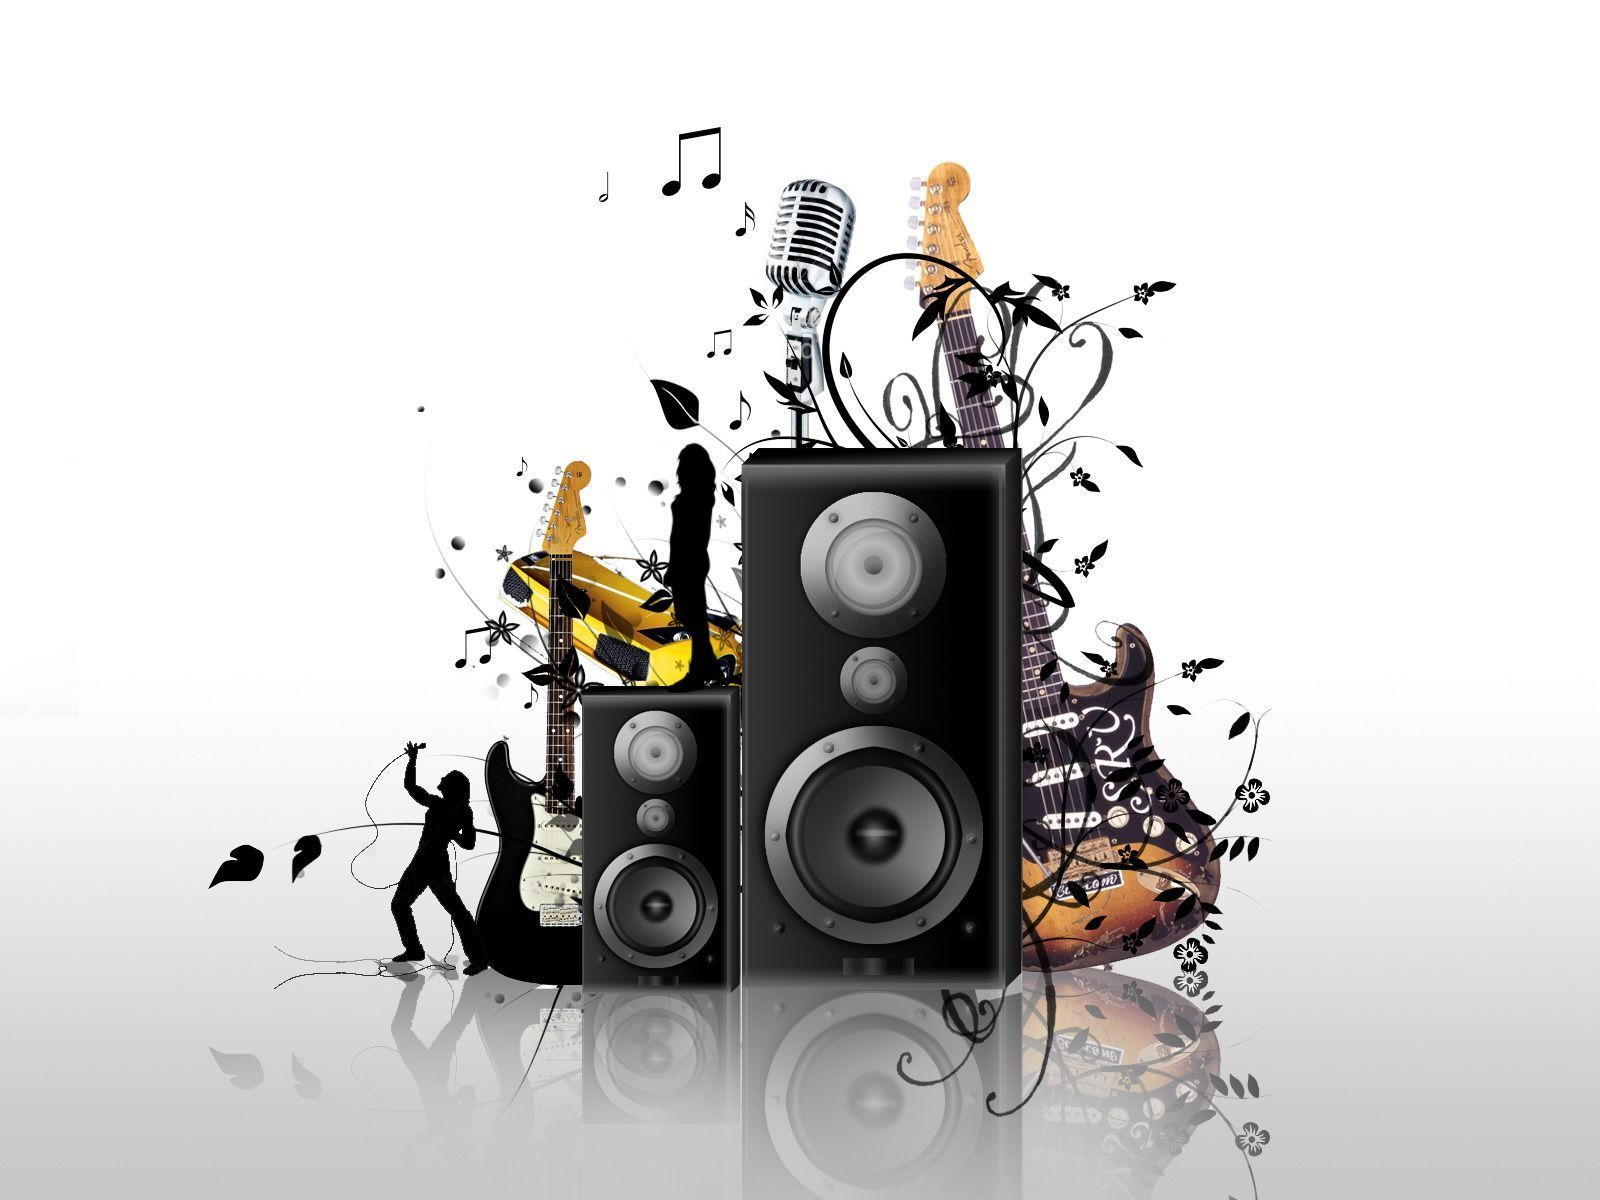 Abstract Music Wallpapers Background White 1839 Wallpaper